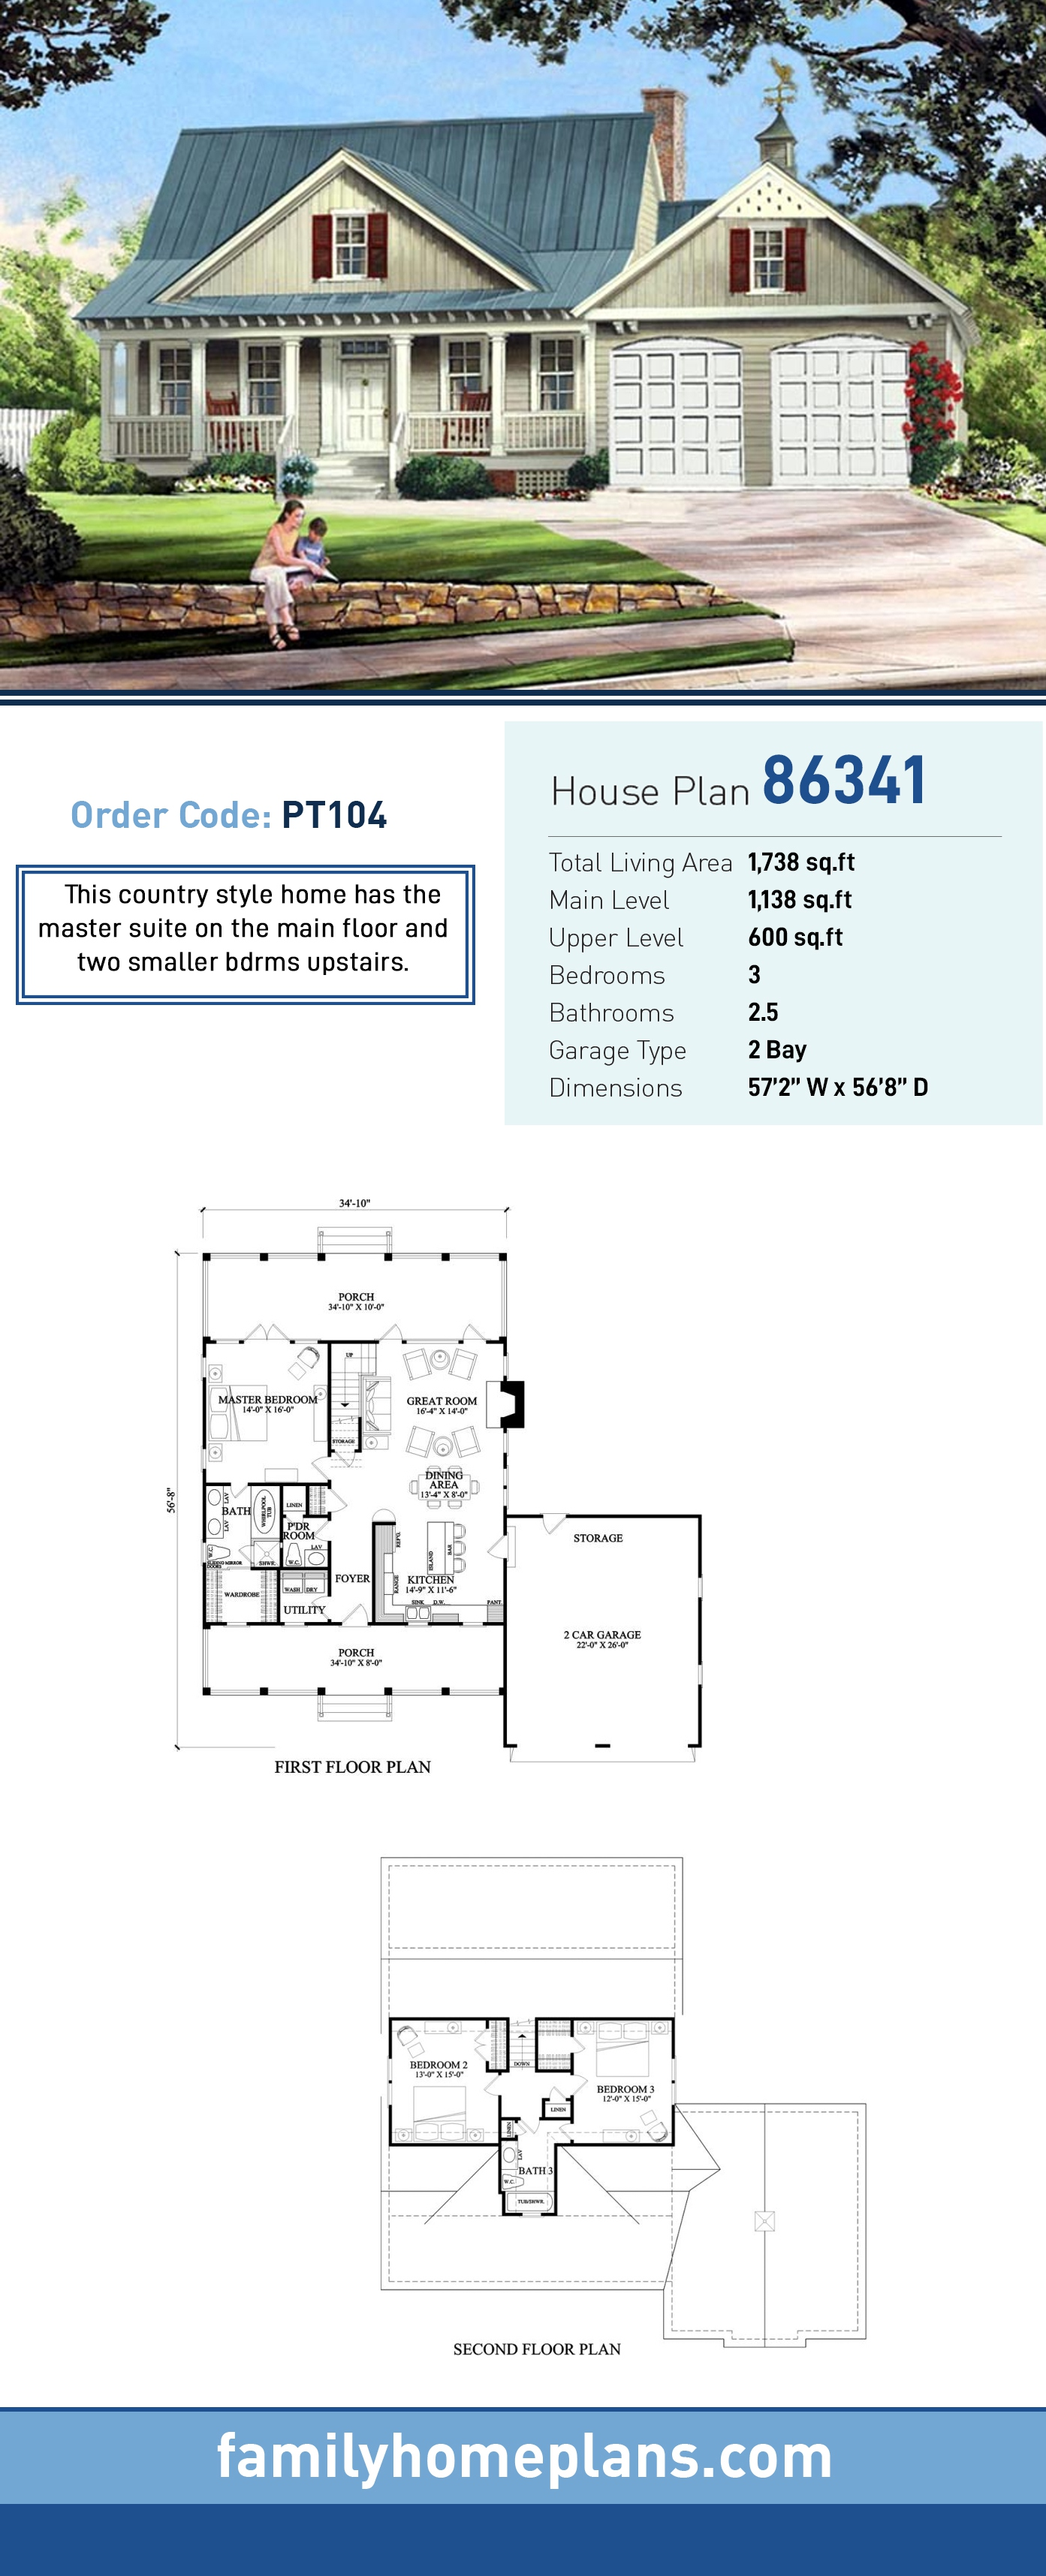 Cottage, Country, Farmhouse House Plan 86341 with 3 Beds, 3 Baths, 2 Car Garage